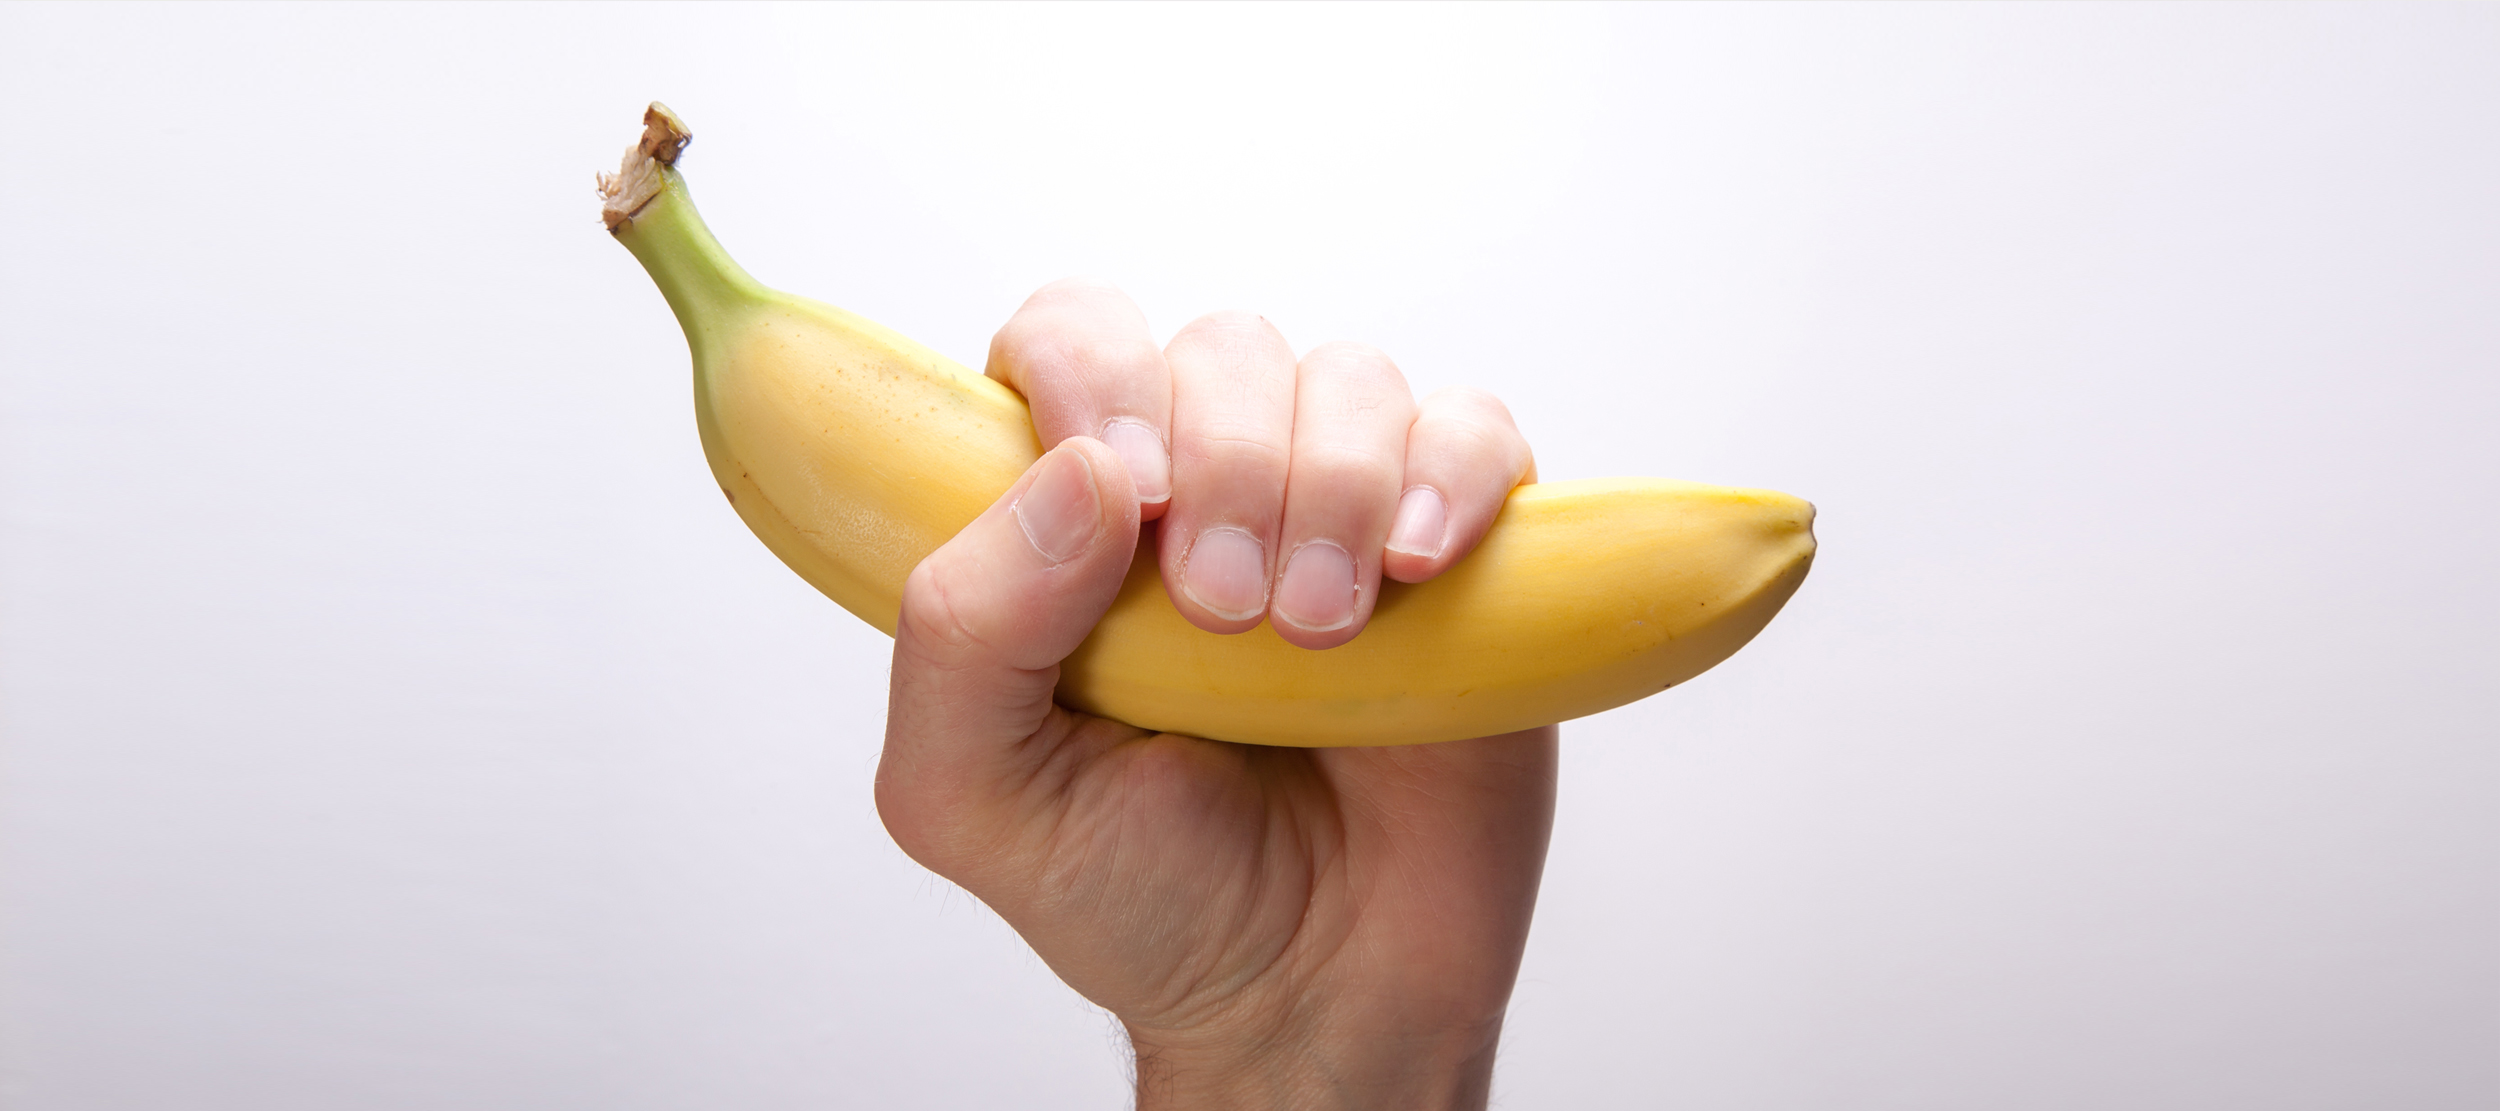 Banana in fist